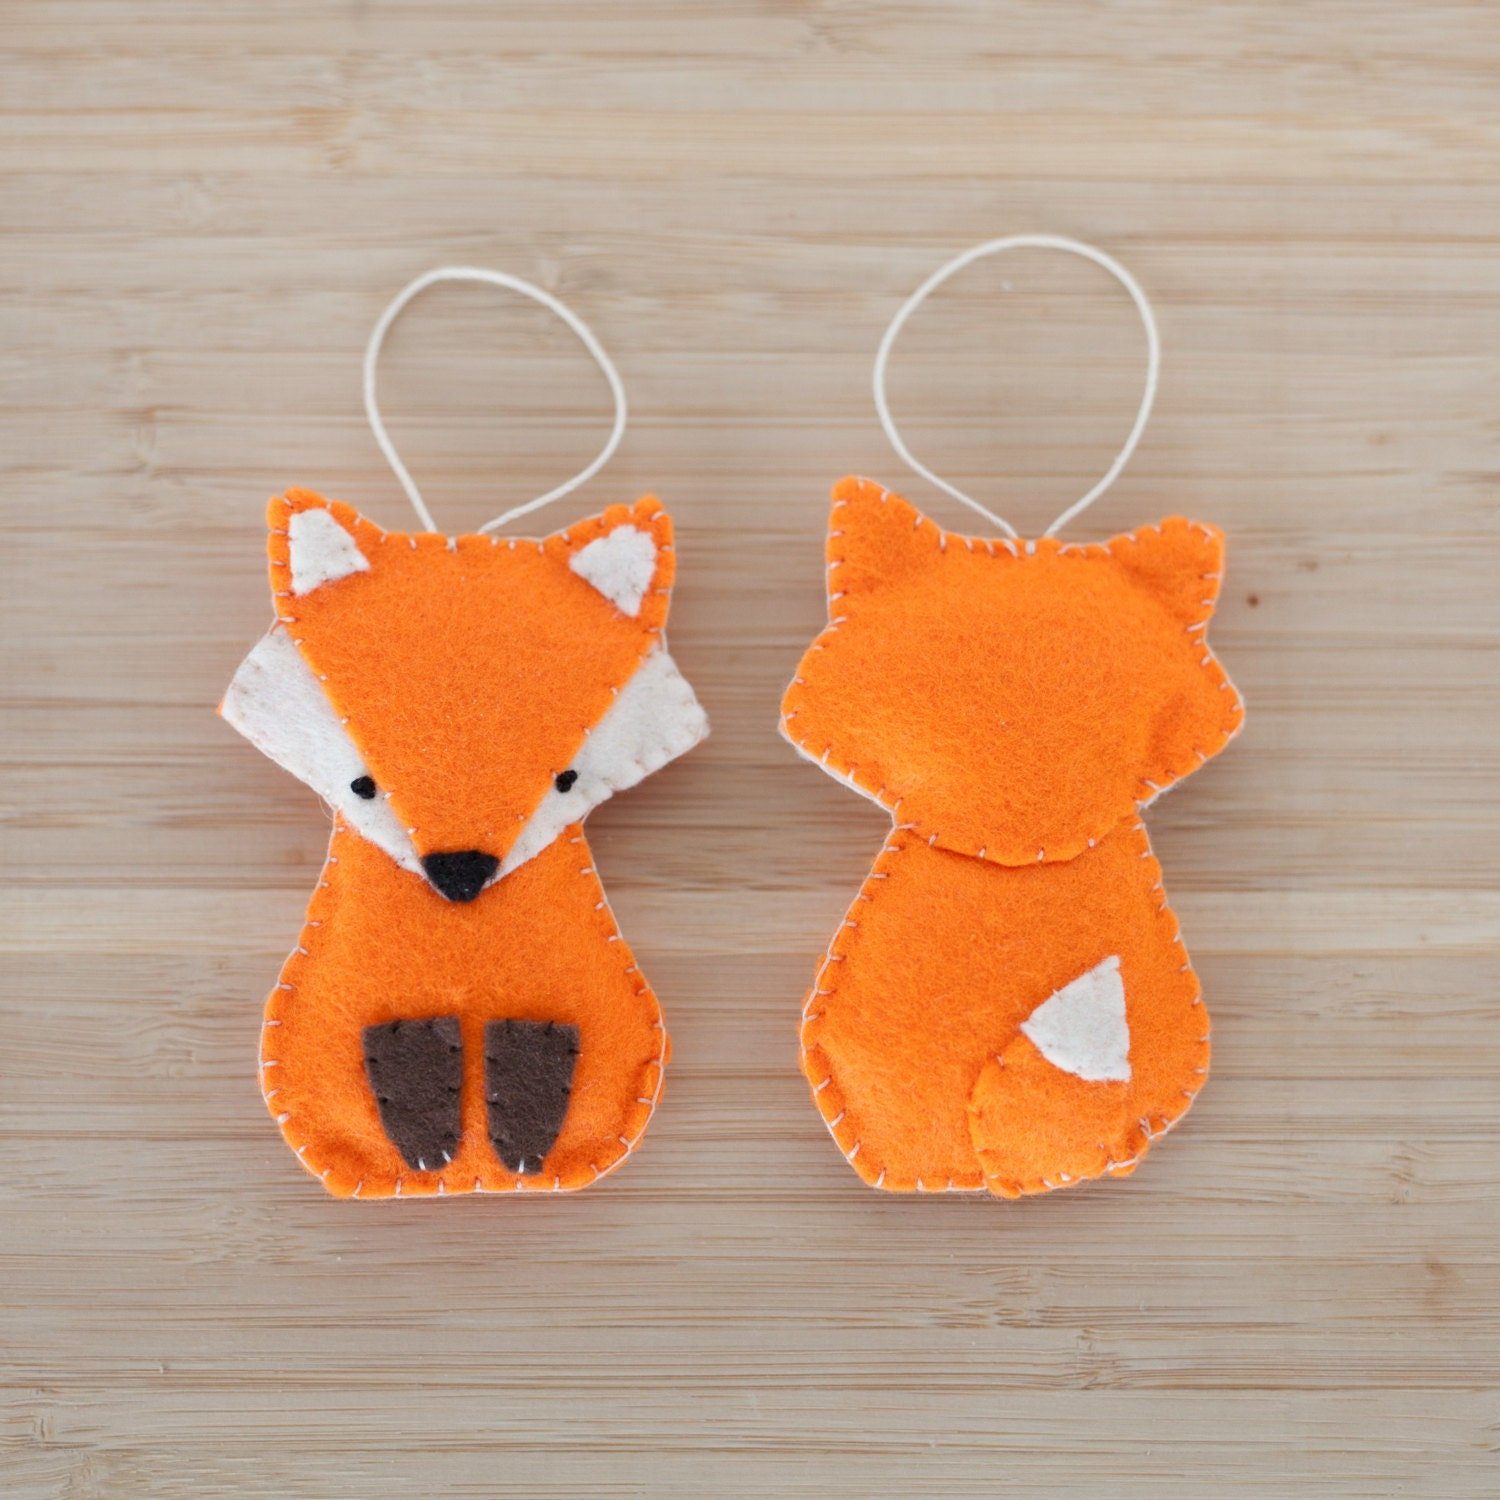 Felt Fox Ornament Handmade Fox Ornament Decorative Fox